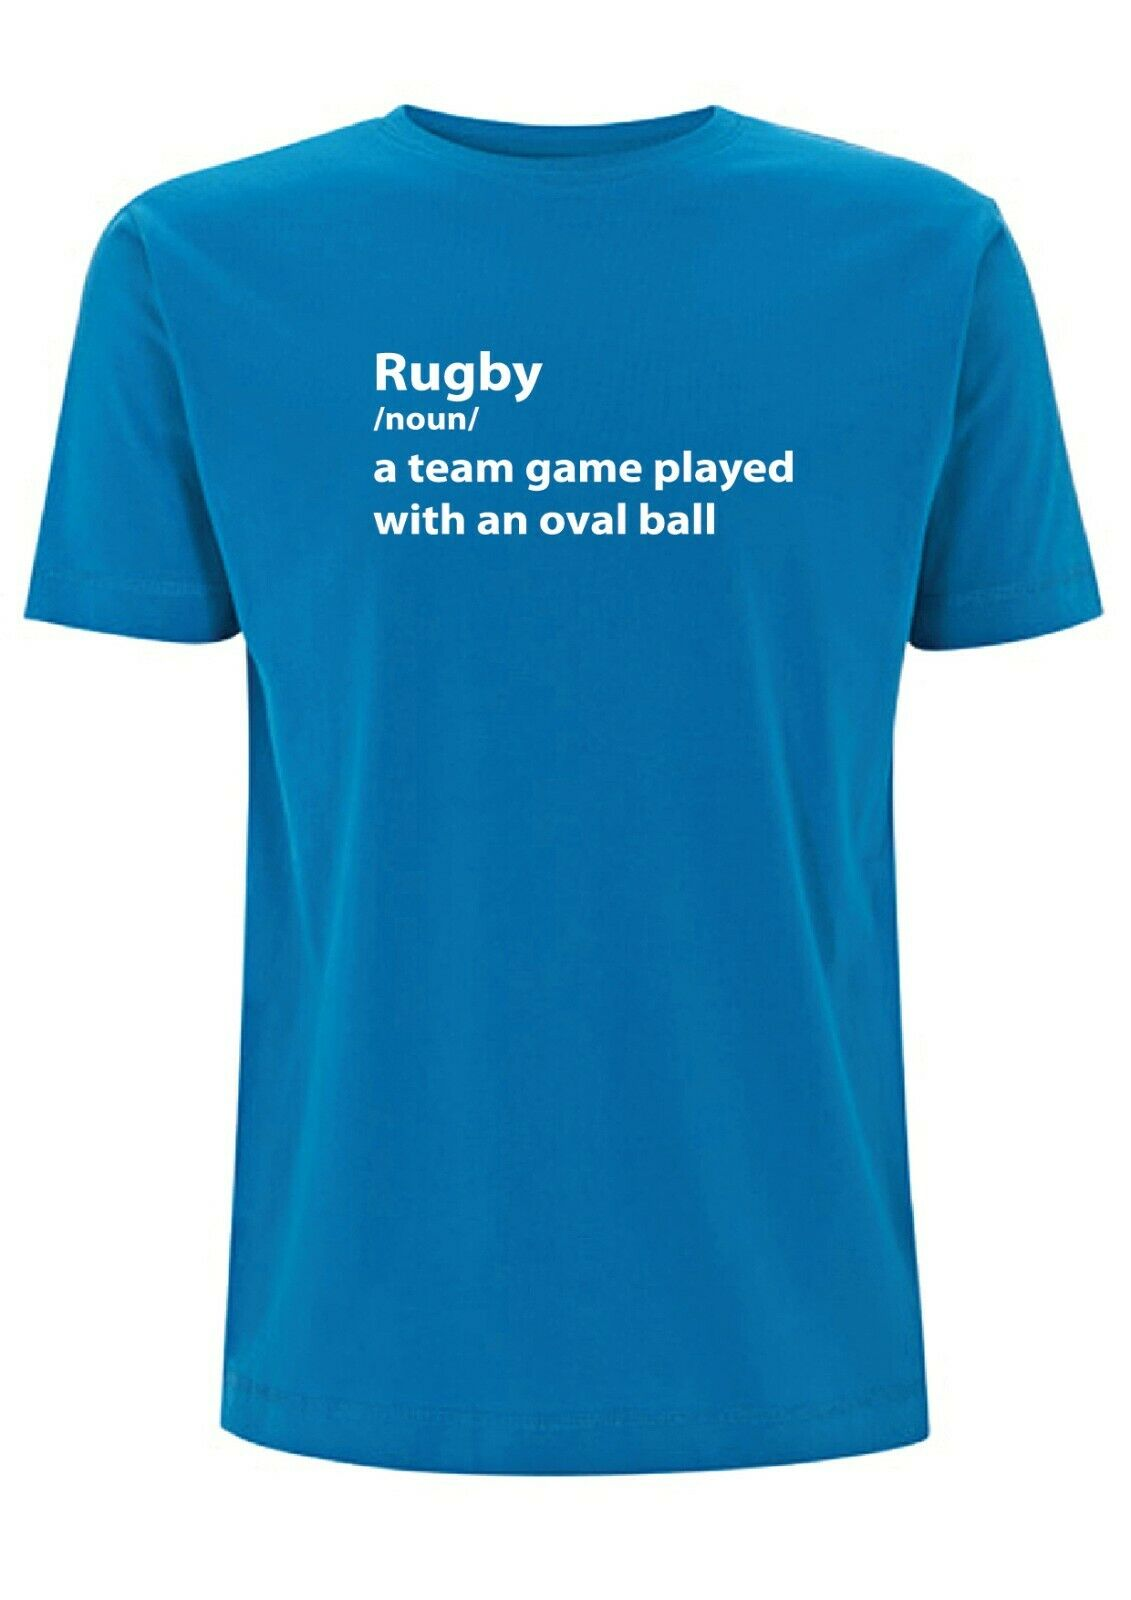 Rugby Meaning T Shirt Mens Top Sport Sports Ruggers ball Urban Dictionary team 2020 High quality Brand T shirt Casual Short slee image